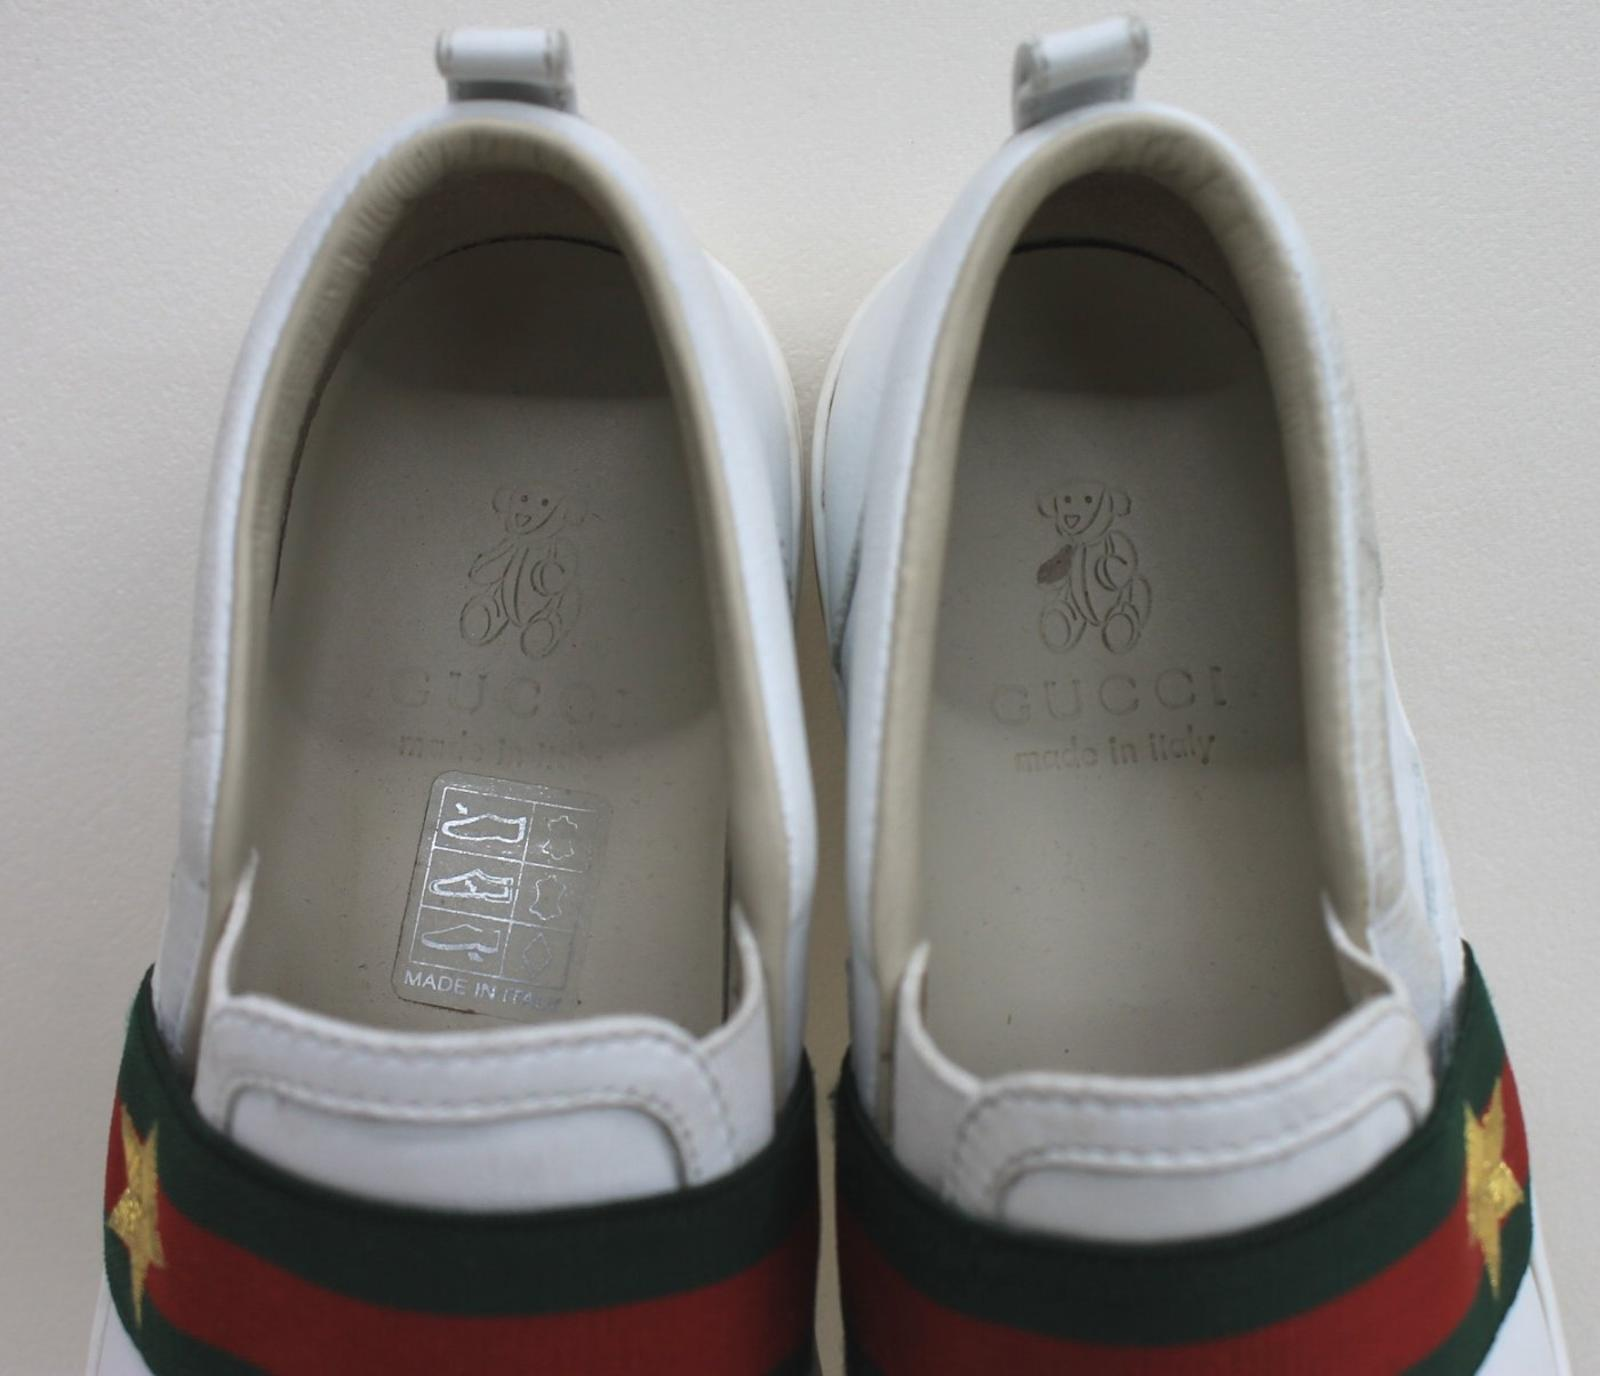 9bcce0bcc GUCCI Boys White Leather Green Red Web Star Slip On Trainers Size UK12 EU30  8 8 of 12 See More